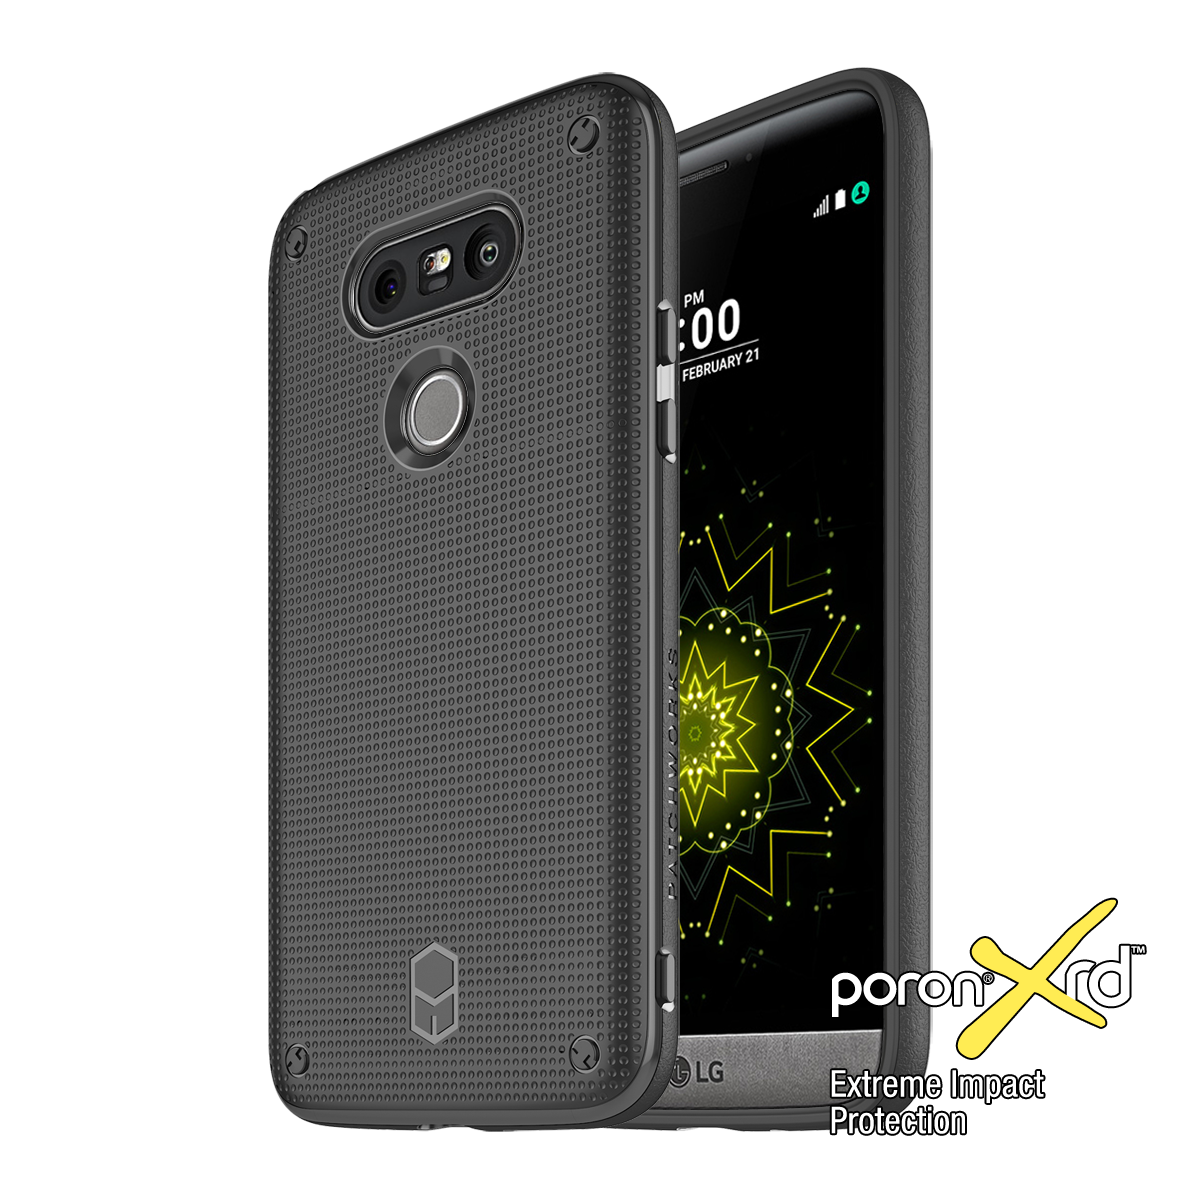 LG G5 FLEXGUARD CASE WITH PORON XRD - Patchworks Global Inc - 1